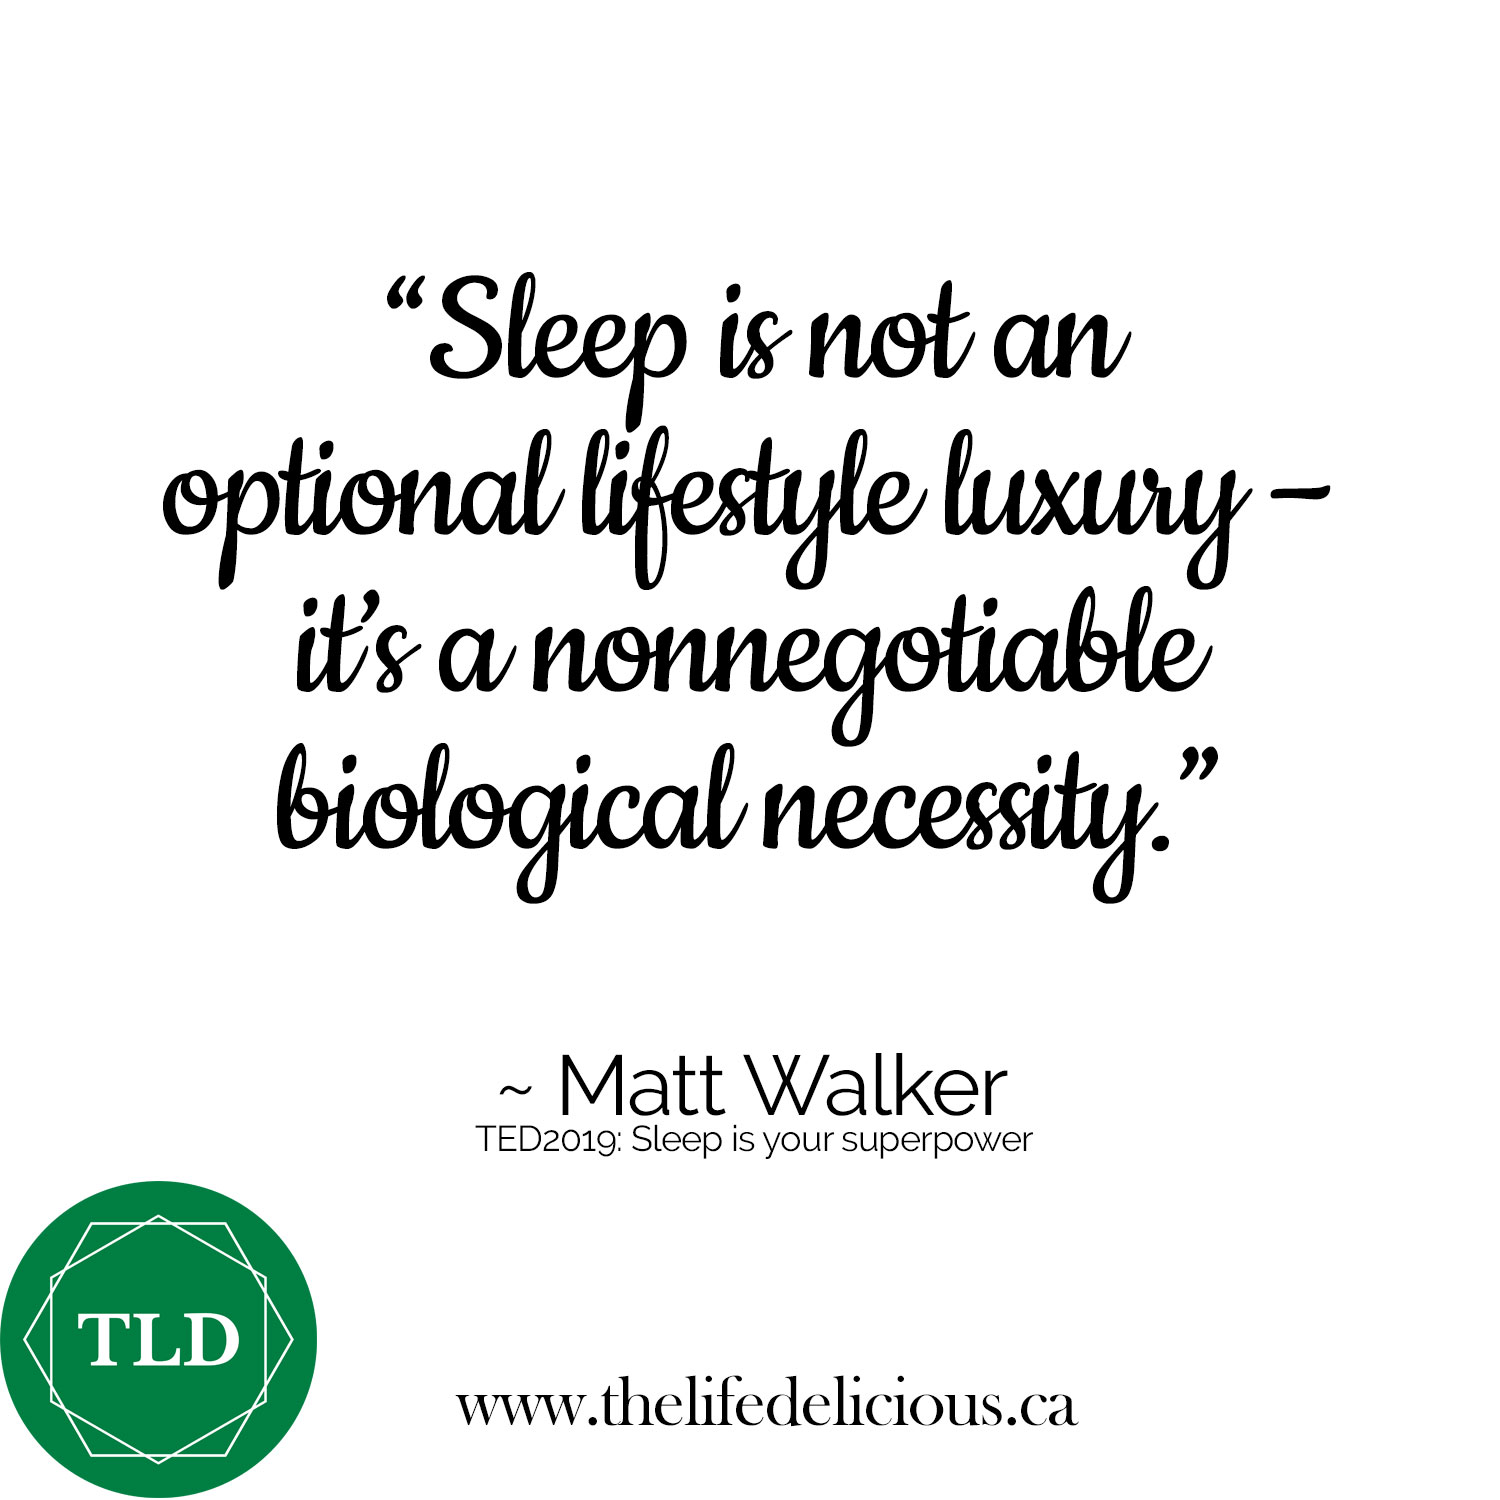 "SLEEP >>> ""What is the mission-critical statement here?"" asks author and neuroscience professor Matthew Walker at the close of his TEDtalk, Sleep is Your Superpower: ⁣⠀⠀⠀⠀⠀⠀⠀⠀⠀ ⁣⠀⠀⠀⠀⠀⠀⠀⠀⠀ ""Well, I think it may be this: sleep, unfortunately, is not an optional lifestyle luxury. Sleep is a nonnegotiable biological necessity. ⁣⠀⠀⠀⠀⠀⠀⠀⠀⠀ ⁣⠀⠀⠀⠀⠀⠀⠀⠀⠀ ""It is your life-support system, and it is Mother Nature's best effort yet at immortality. And the decimation of sleep throughout industrialized nations is having a catastrophic impact on our health, our wellness, even the safety and the education of our children. ⁣⠀⠀⠀⠀⠀⠀⠀⠀⠀ ⁣⠀⠀⠀⠀⠀⠀⠀⠀⠀ ""It's a silent sleep loss epidemic, and it's fast becoming one of the greatest public health challenges that we face in the 21st century. ⁣⠀⠀⠀⠀⠀⠀⠀⠀⠀ ⁣⠀⠀⠀⠀⠀⠀⠀⠀⠀ ""I believe it is now time for us to reclaim our right to a full night of sleep, and without embarrassment or that unfortunate stigma of laziness. And in doing so, we can be reunited with the most powerful elixir of life.""⁣⠀⠀⠀⠀⠀⠀⠀⠀⠀ ⁣⠀⠀⠀⠀⠀⠀⠀⠀⠀ Watch the video here:  https://www.ted.com/talks/matt_walker_sleep_is_your_superpower ⁣⠀⠀⠀⠀⠀⠀⠀⠀⠀ ⁣⠀⠀⠀⠀⠀⠀⠀⠀⠀ Here's to our being reunited with the most powerful elixir of life, starting tonight!!⁣⠀⠀⠀"